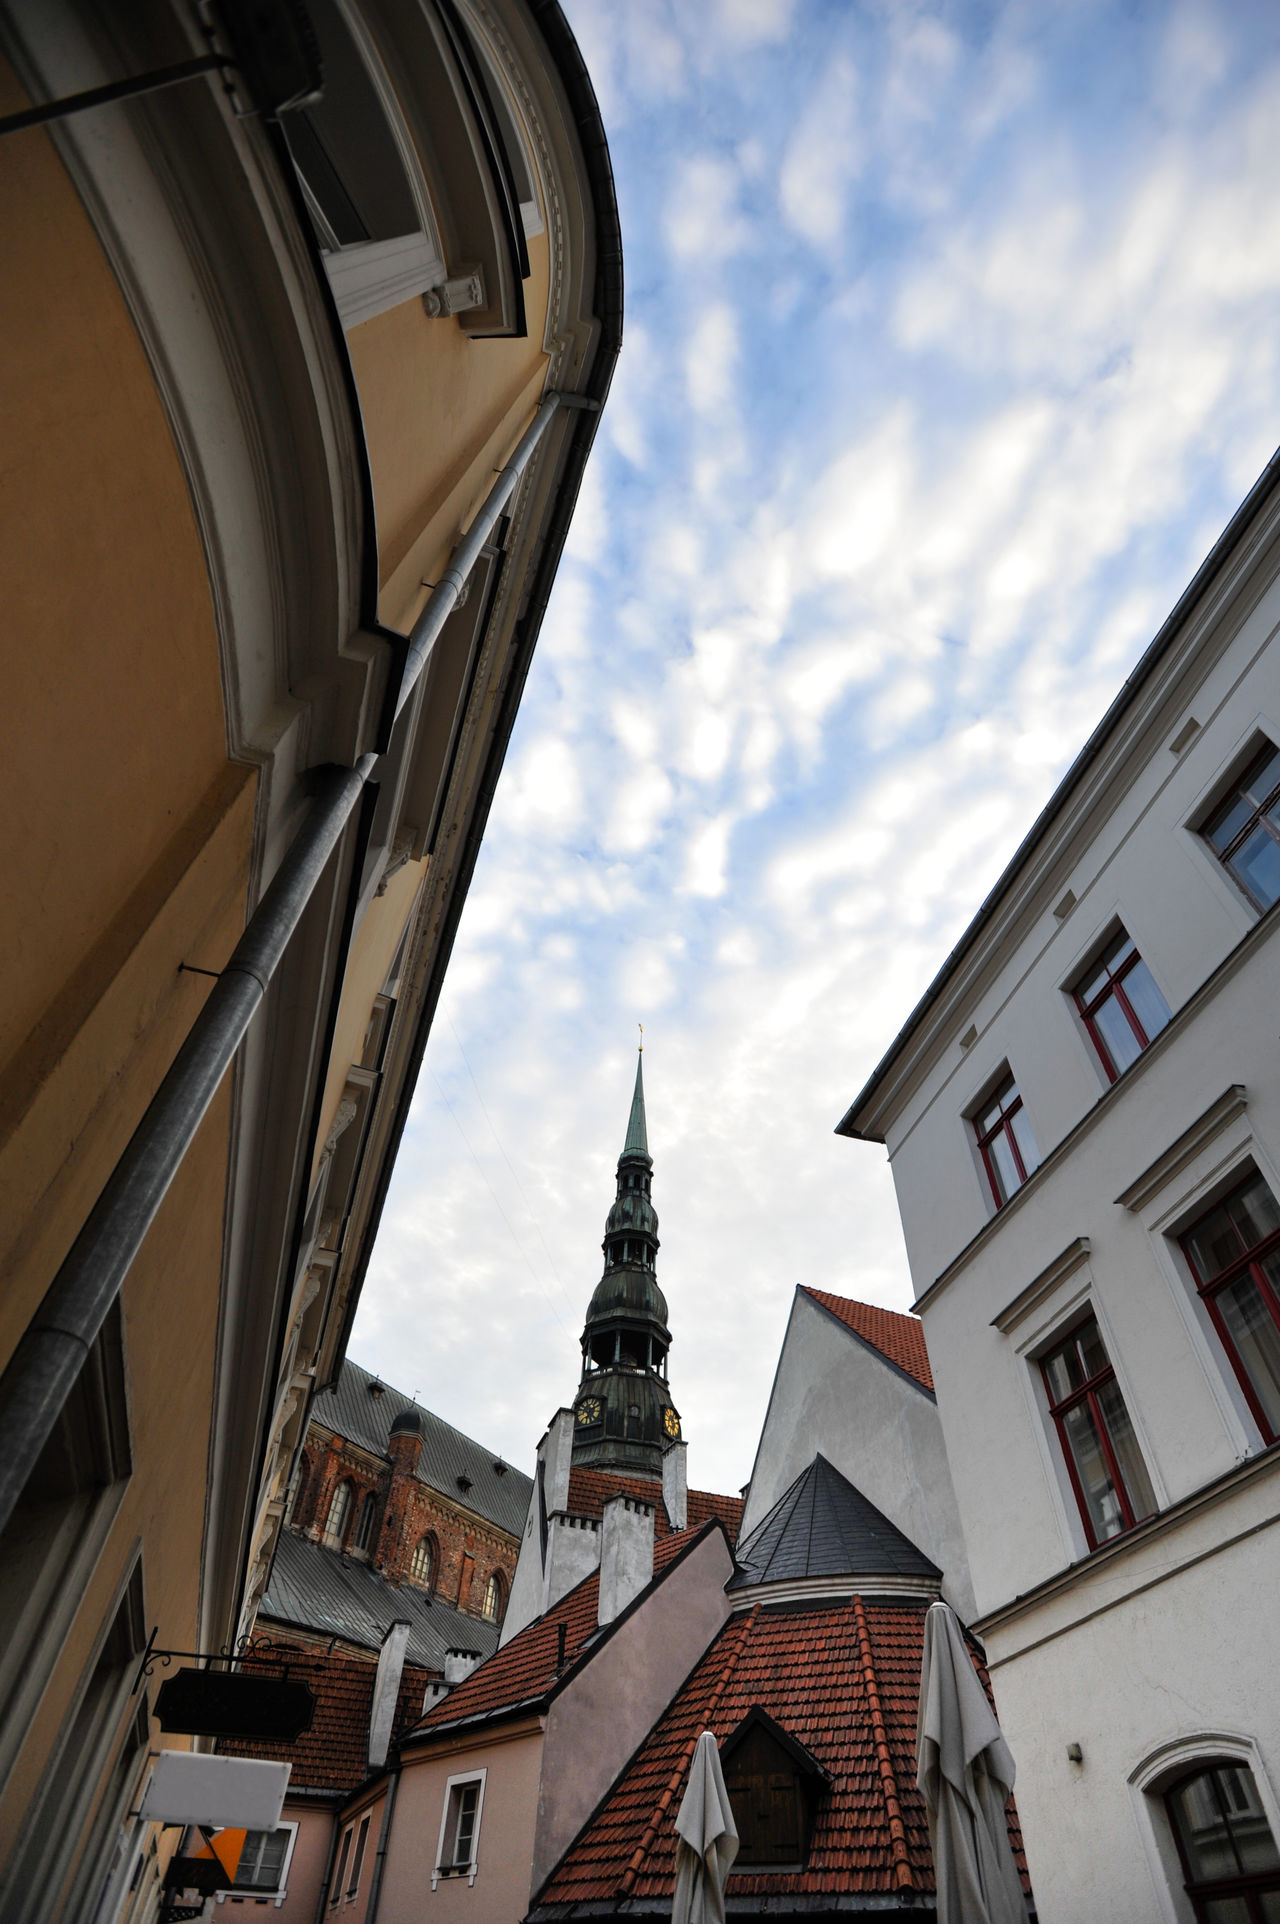 Konventa Seta in Riga, Latvia Architecture Building Exterior Church City Famous Place High Section Konventa Sēta Low Angle View Mediaeval Old Old Buildings Old House Old Town Outdoors Residential Building Residential Structure Riga Tourism Travel Destinations Travelling Vecriga